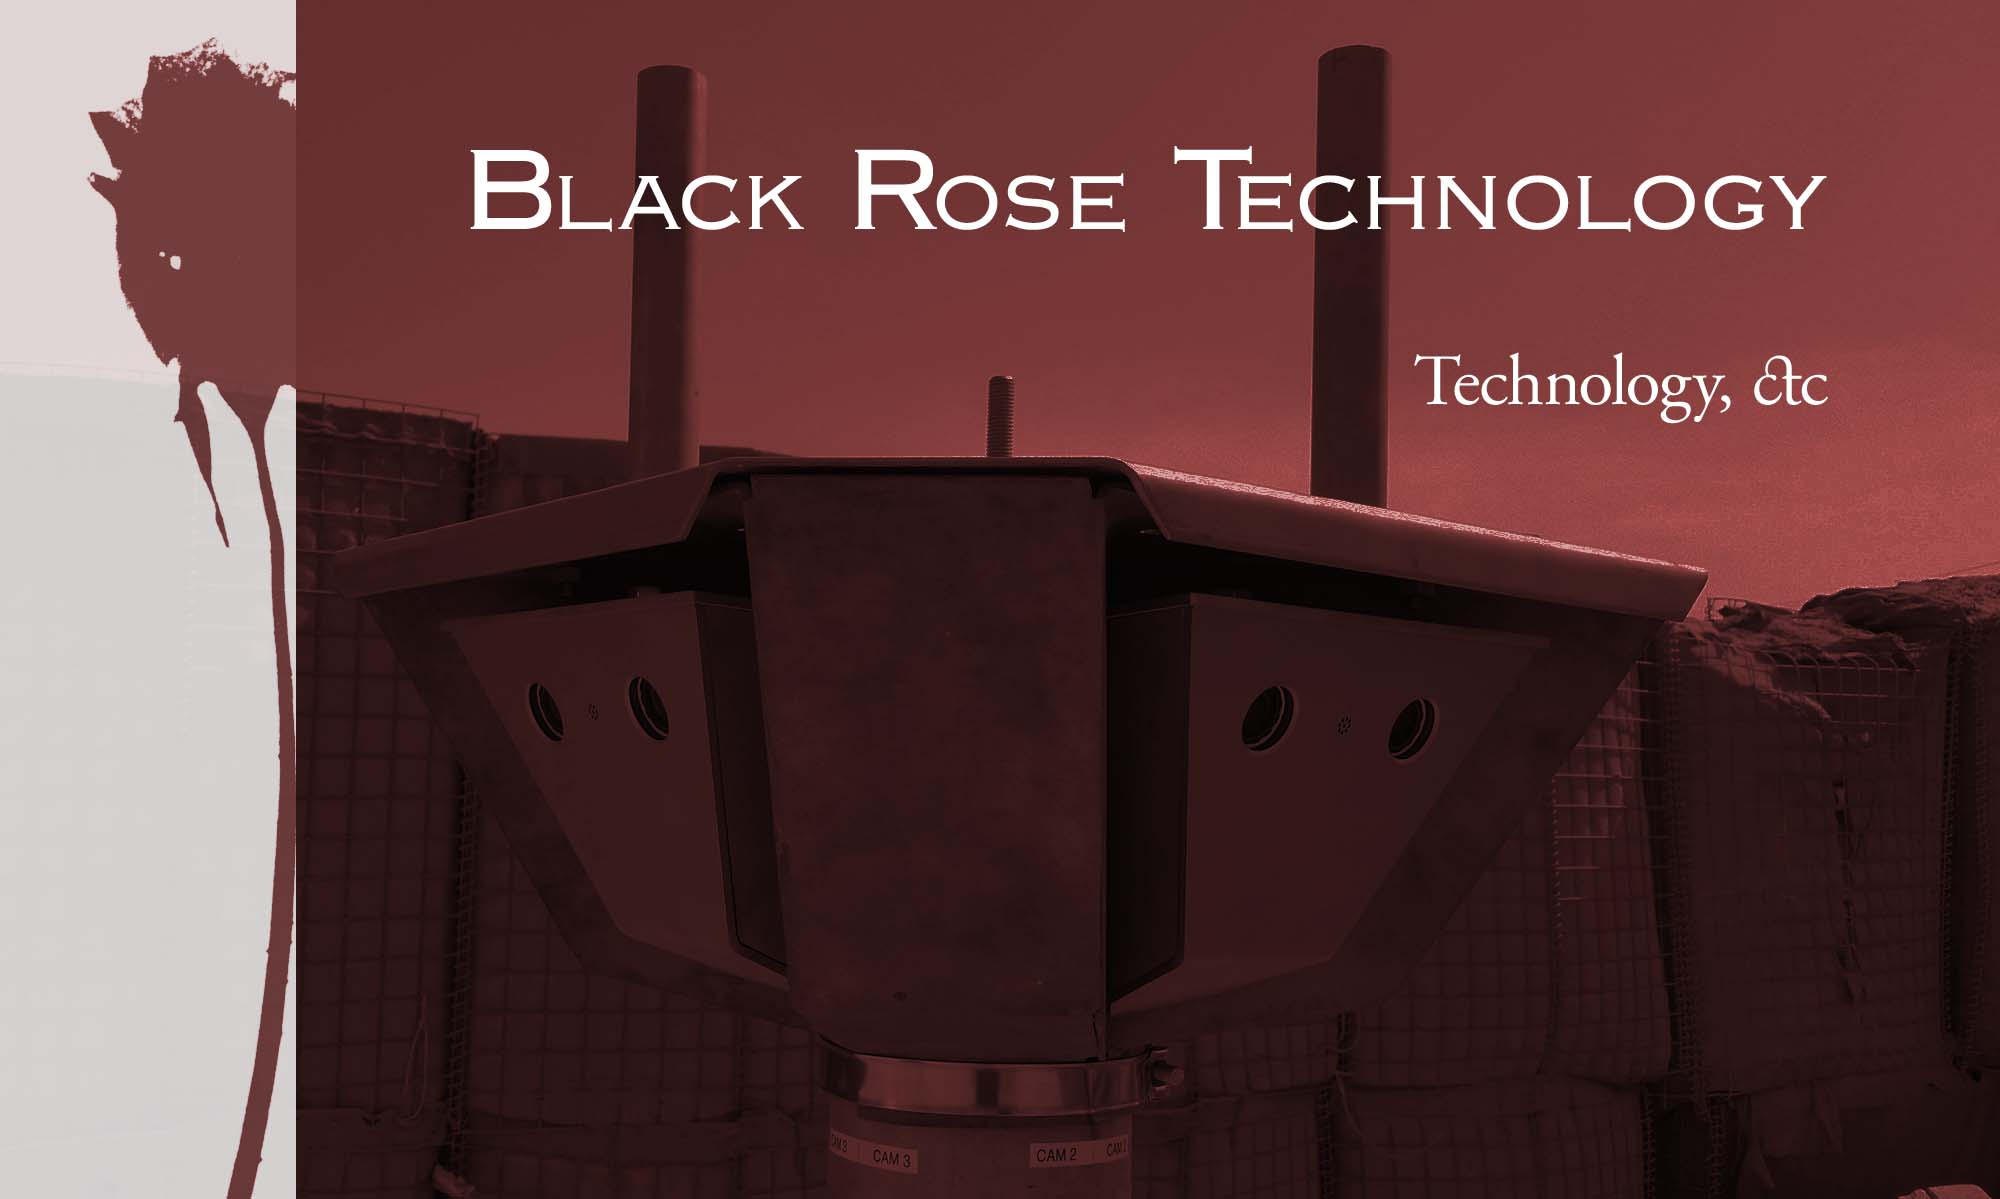 Black Rose Technology